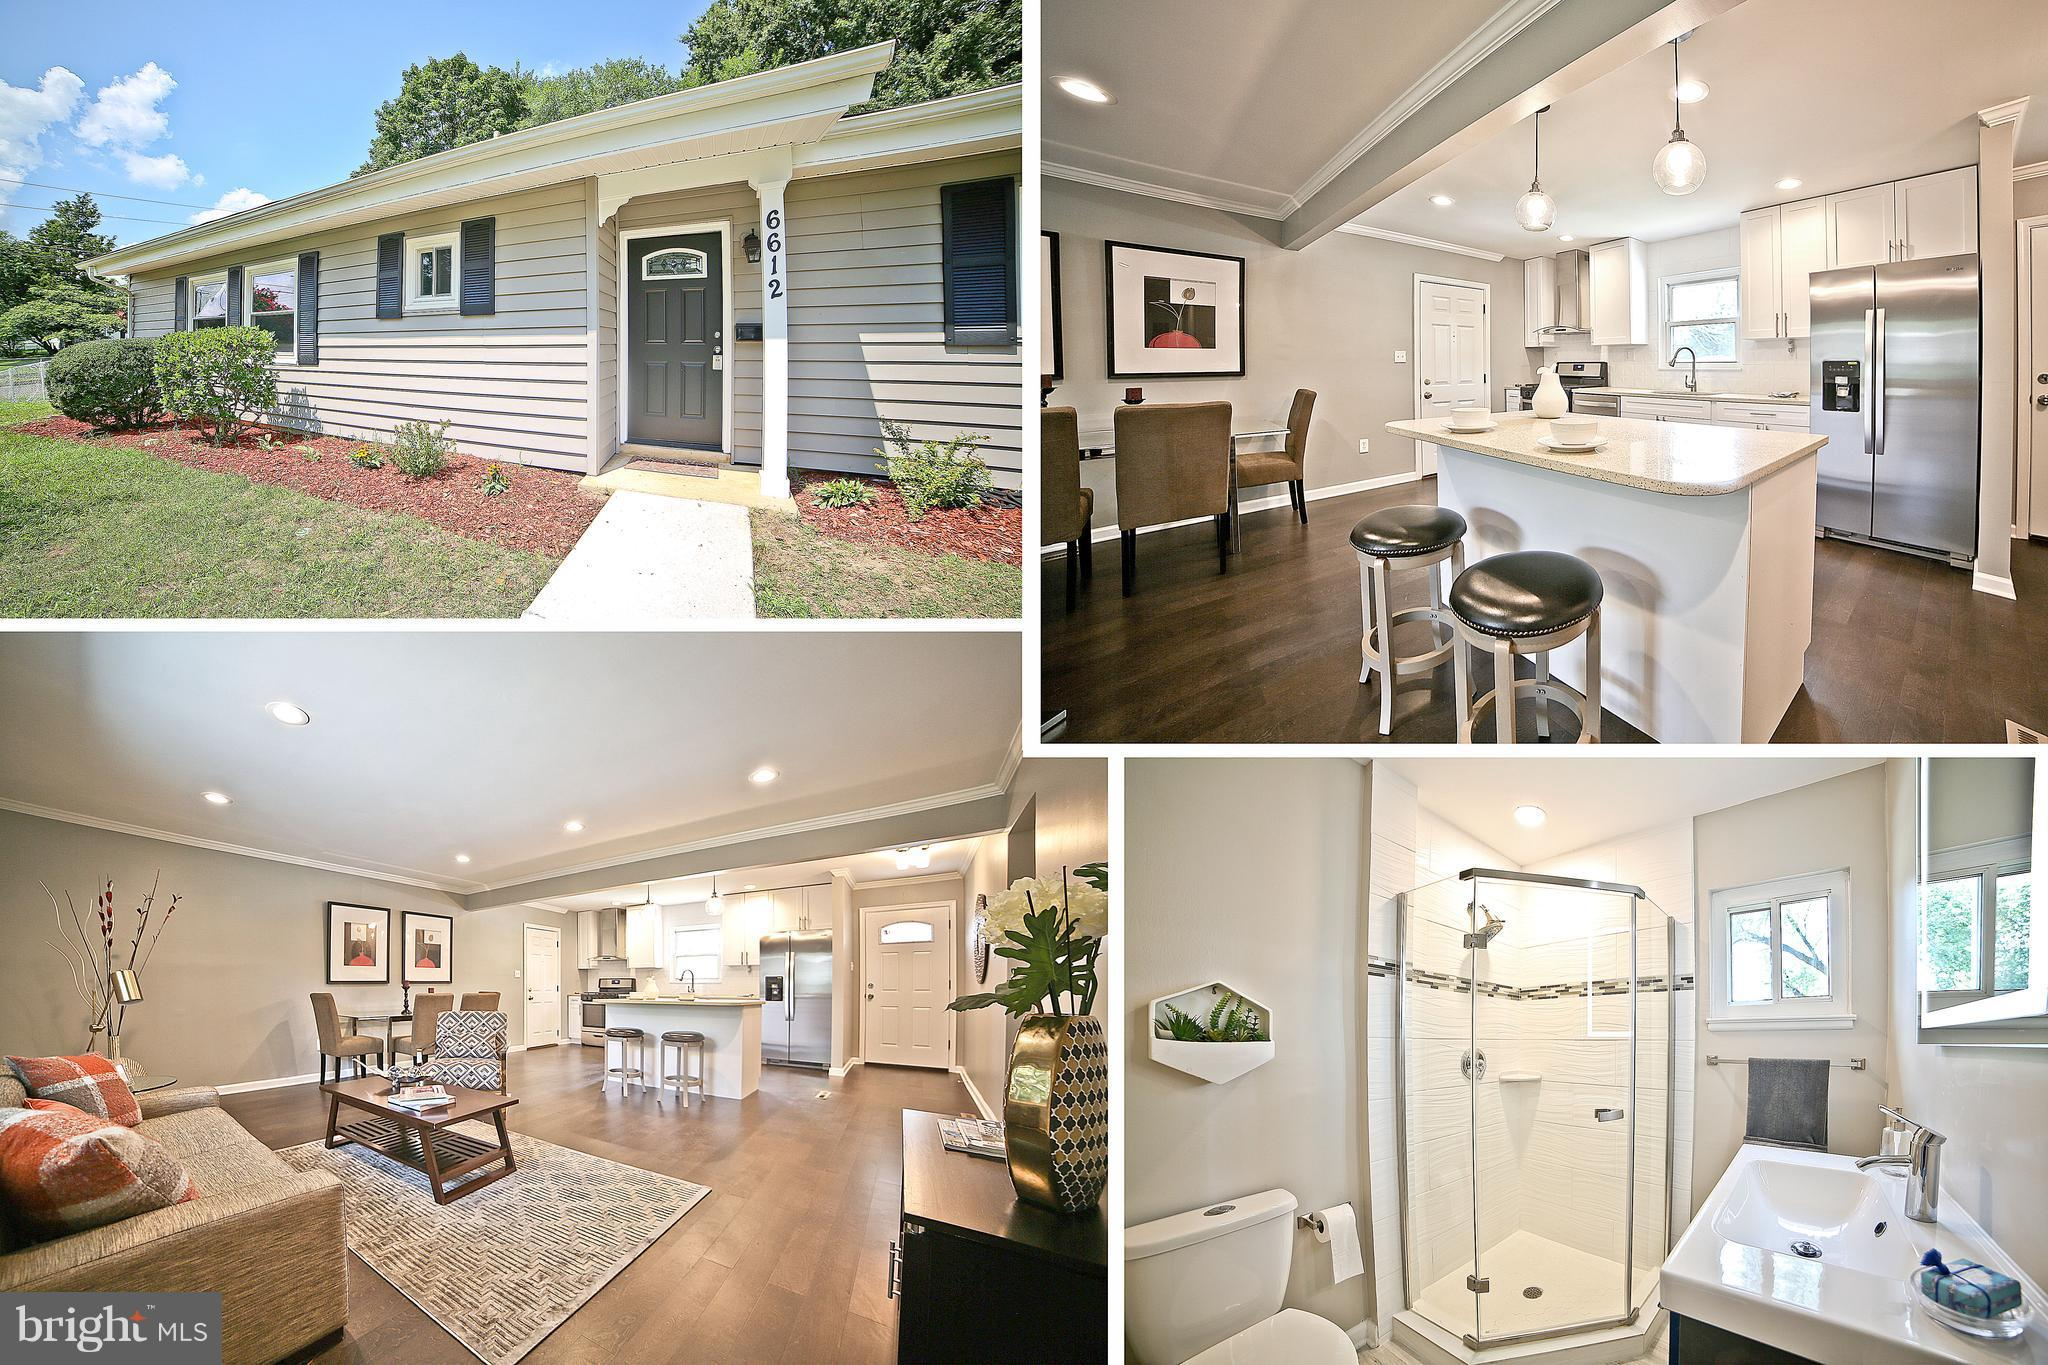 OPEN HOUSE SUN. 10/07/18 FROM 11-1 PM. NEW PRICE !!!. SFH FULLY RENOVATED,CORNER LOT OPEN FLOOR PLAN, 4 BEDROOMS, 2 FULL BATHS, FRESHLY PAINTED, EAT-IN KITCHEN, NEW CABINETS, NEW COUNTER TOPS, NEW SS APPLIANCES, NEWER WINDOWS, NEW ELECTRICAL PANEL,  NEW AC UNIT, NEW HDWD FLOORS, NEWER WATER HEATER, BIG BACKYARD. NO HOA. WALK TO BUS & METRO. EASY ACCESS TO 95, 495, 395, CLOSE TO SPRINGFIELD MALL.